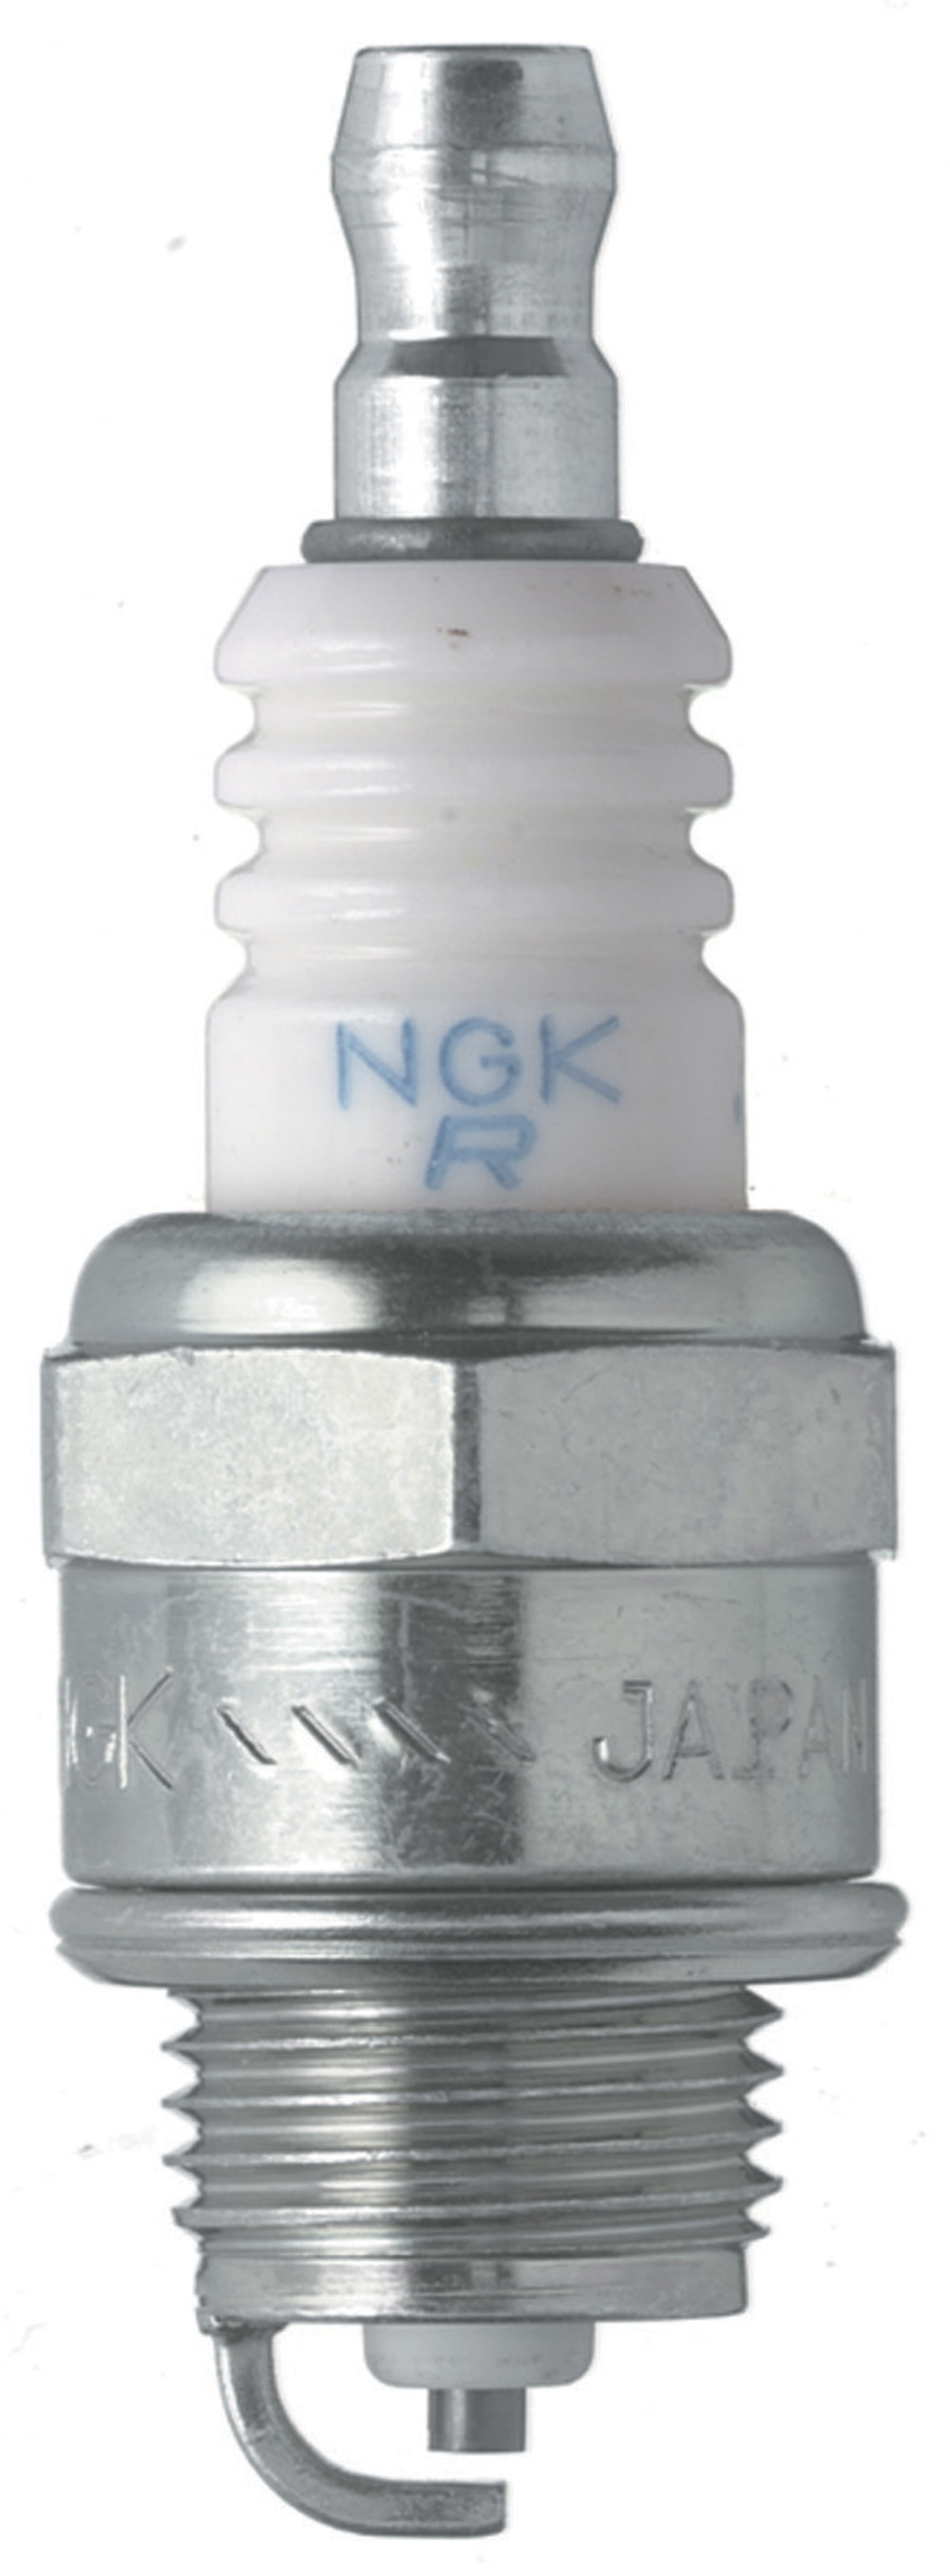 NGK Spark Plugs Stock # 97568 Shop-Pack of 25